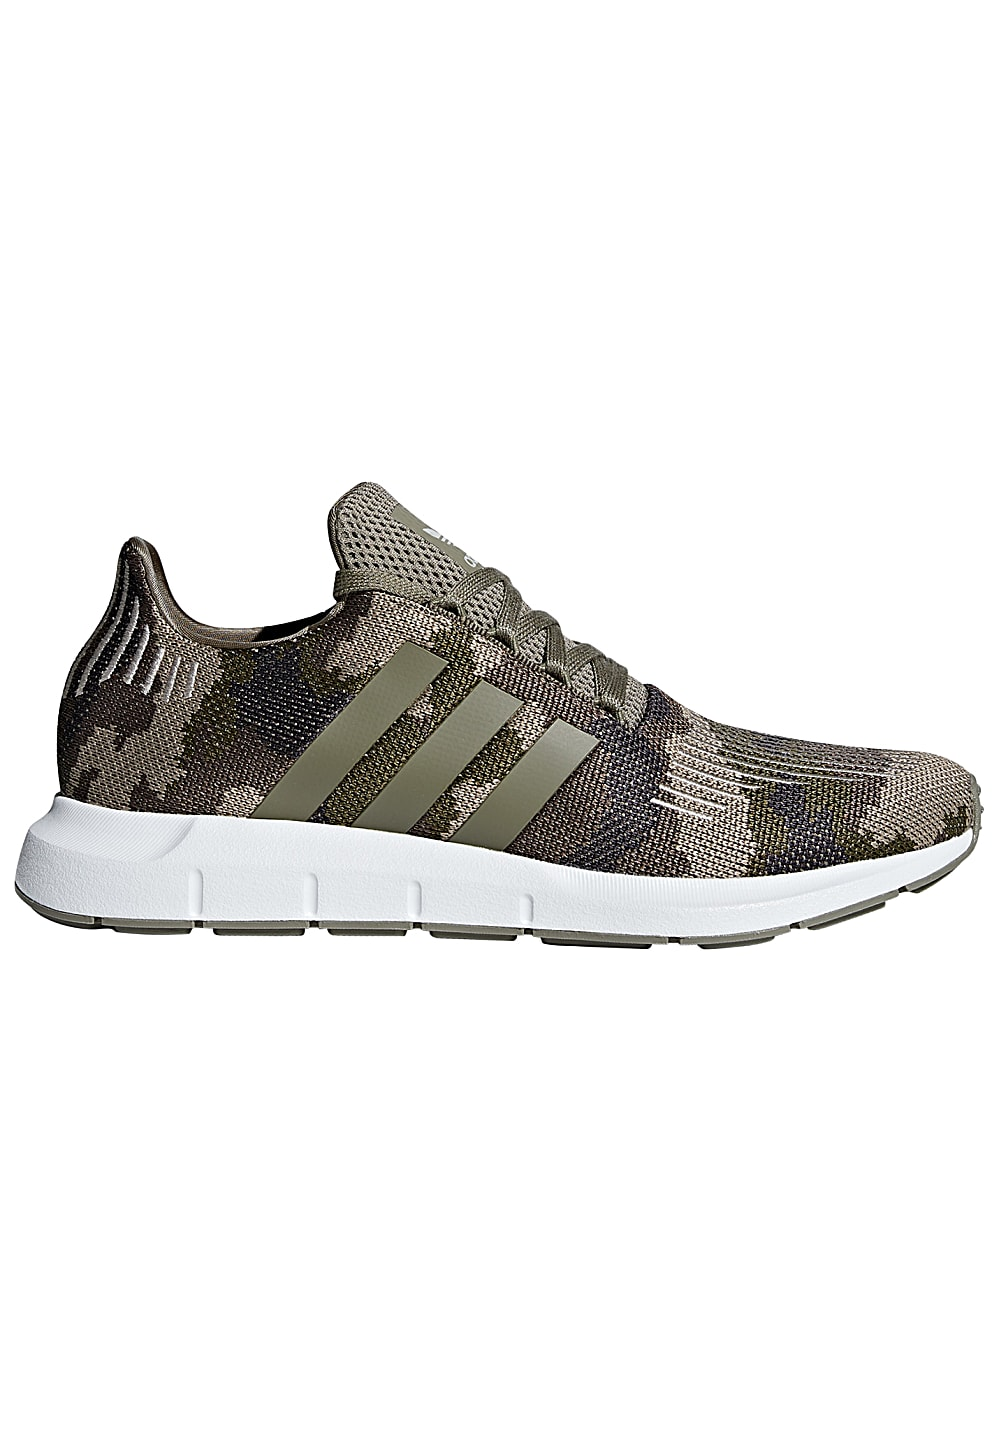 low priced huge sale buy online ADIDAS ORIGINALS Swift Run - Baskets pour Homme - Camouflage